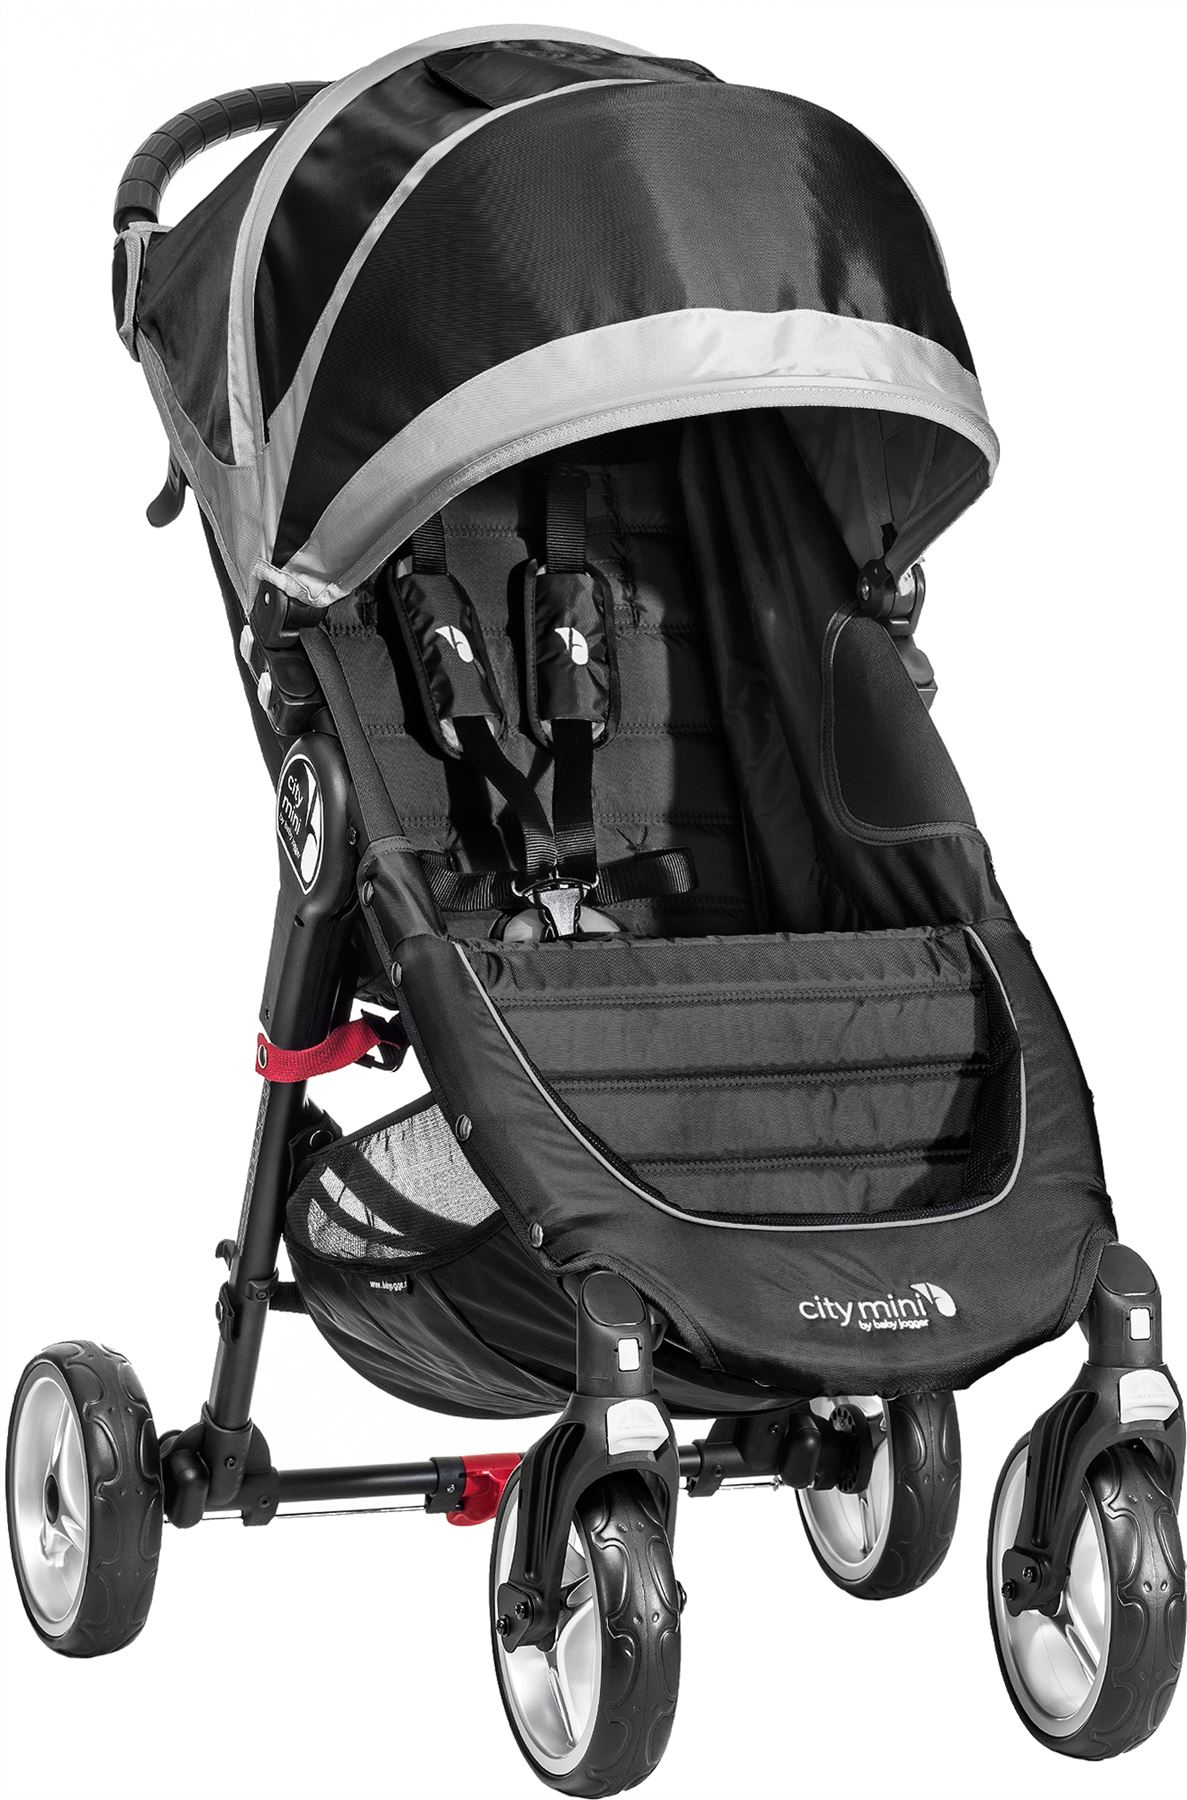 Baby-Jogger-CITY-MINI-4-Rad-SINGLE-STROLLER-WAGEN-Kinderwagen-Baby-Reisen-Neu